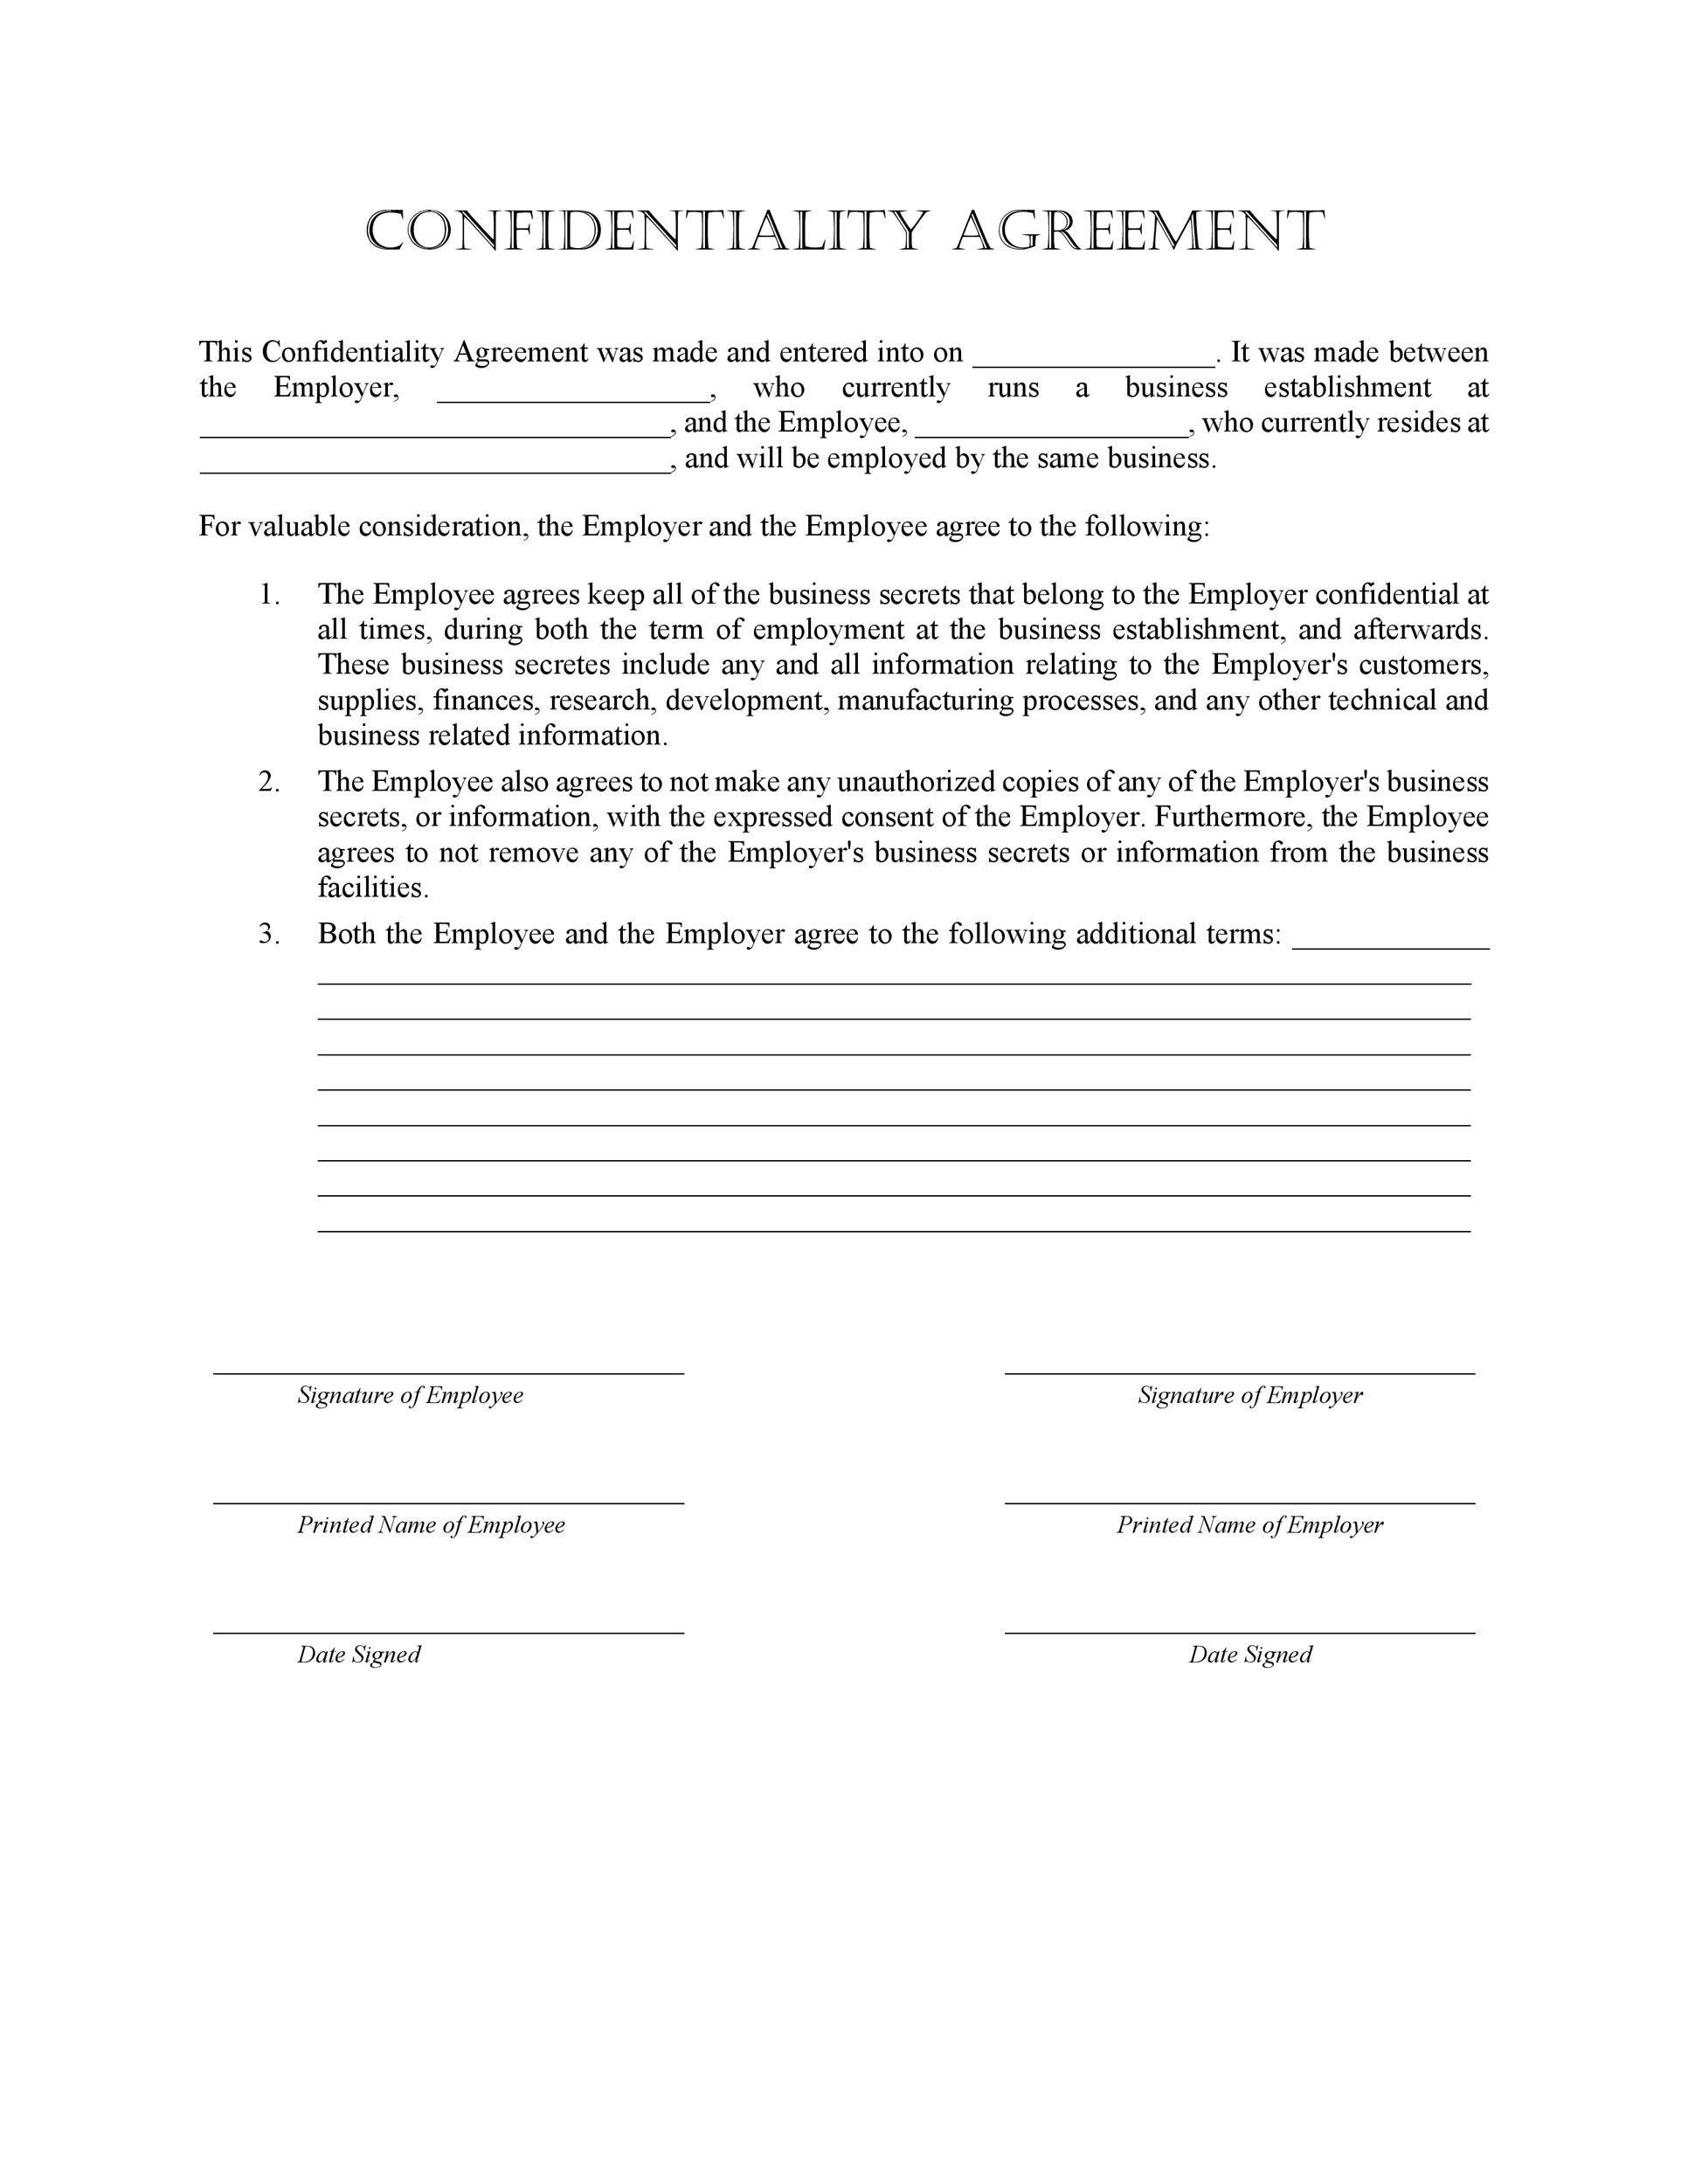 40 Non Disclosure Agreement Templates, Samples  Forms - Template Lab - confidentiality agreement template